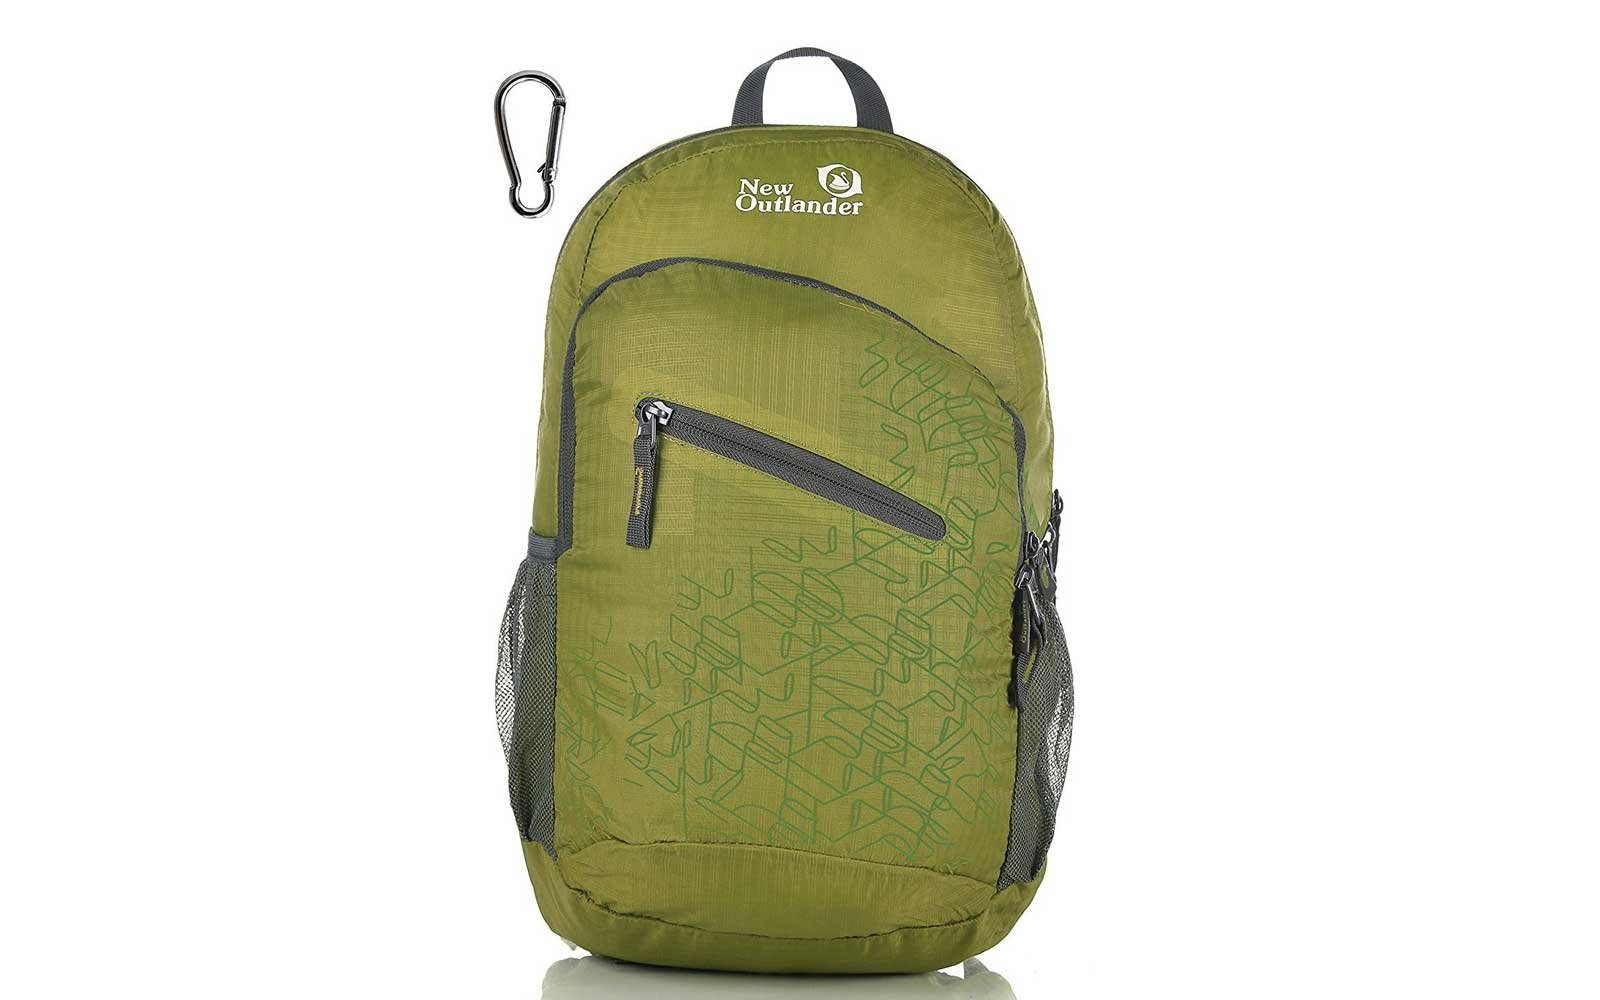 Best Selling Backpack on Amazon